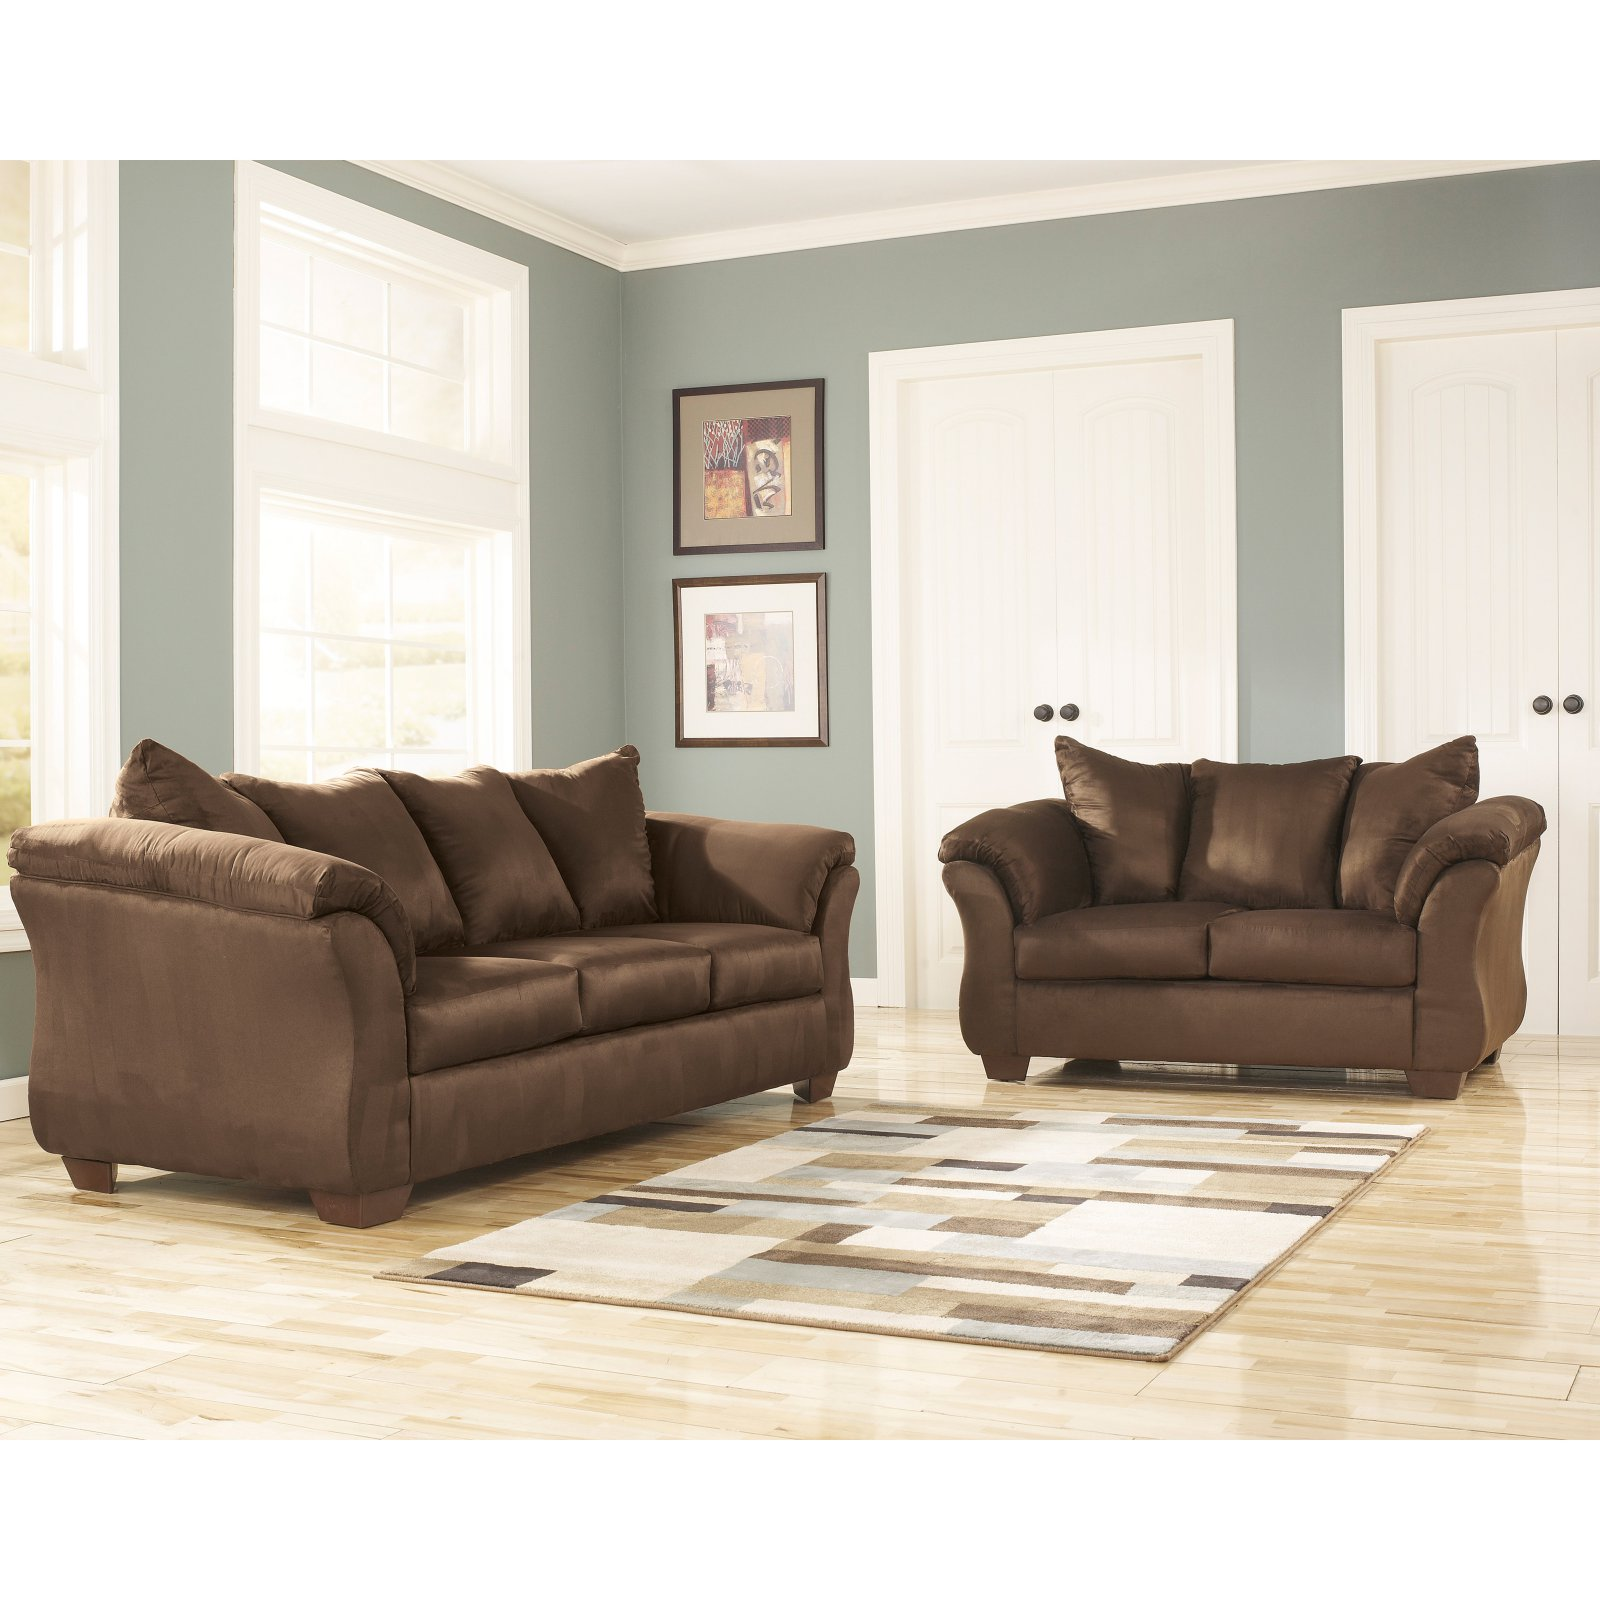 Signature Design by Ashley Darcy Fabric Living Room Set Cafe